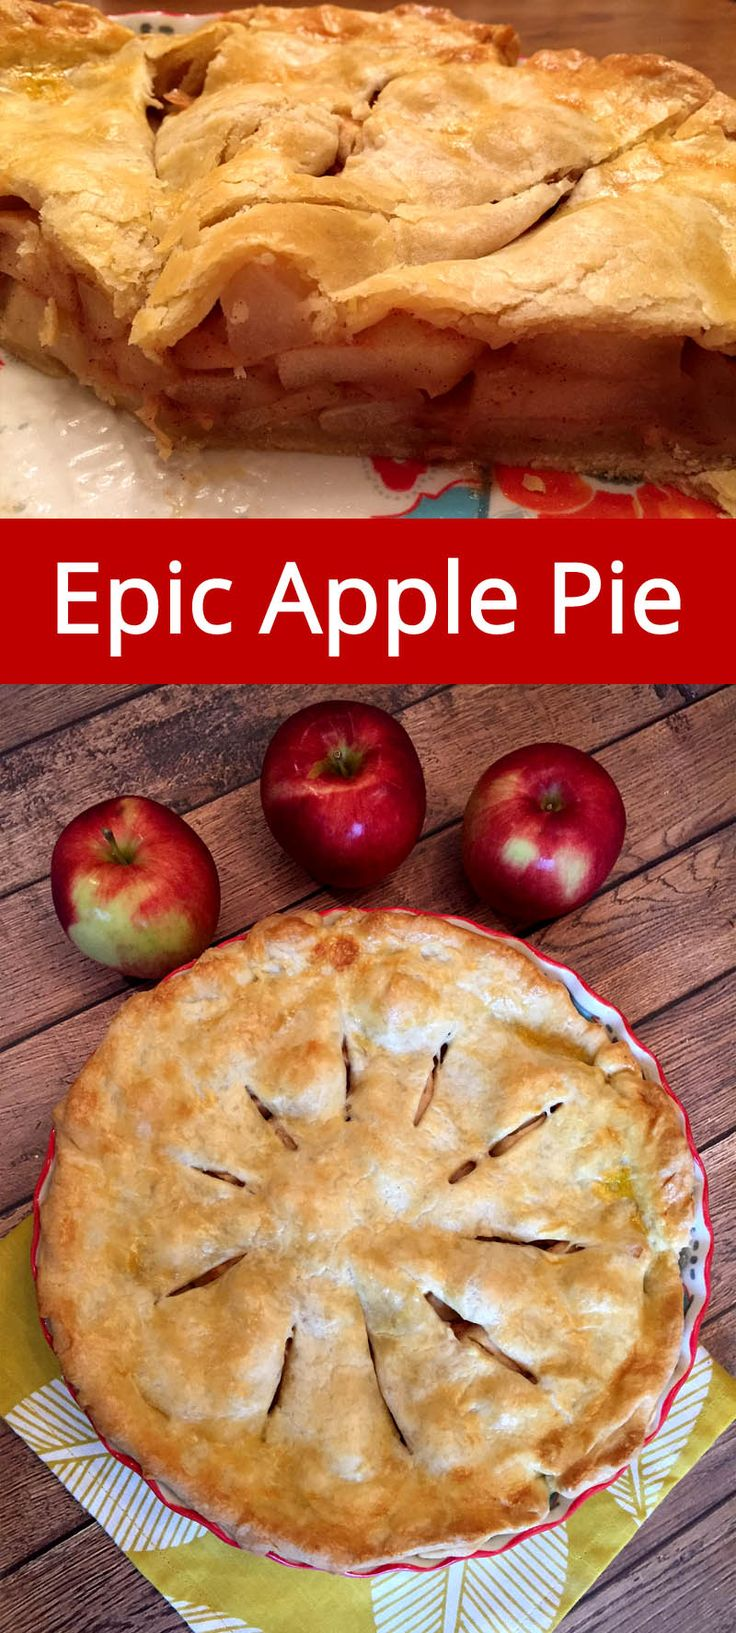 Best Apple Pie Recipe Ever!  This is my go-to apple pie recipe, it's so easy and delicious! | MelanieCooks.com